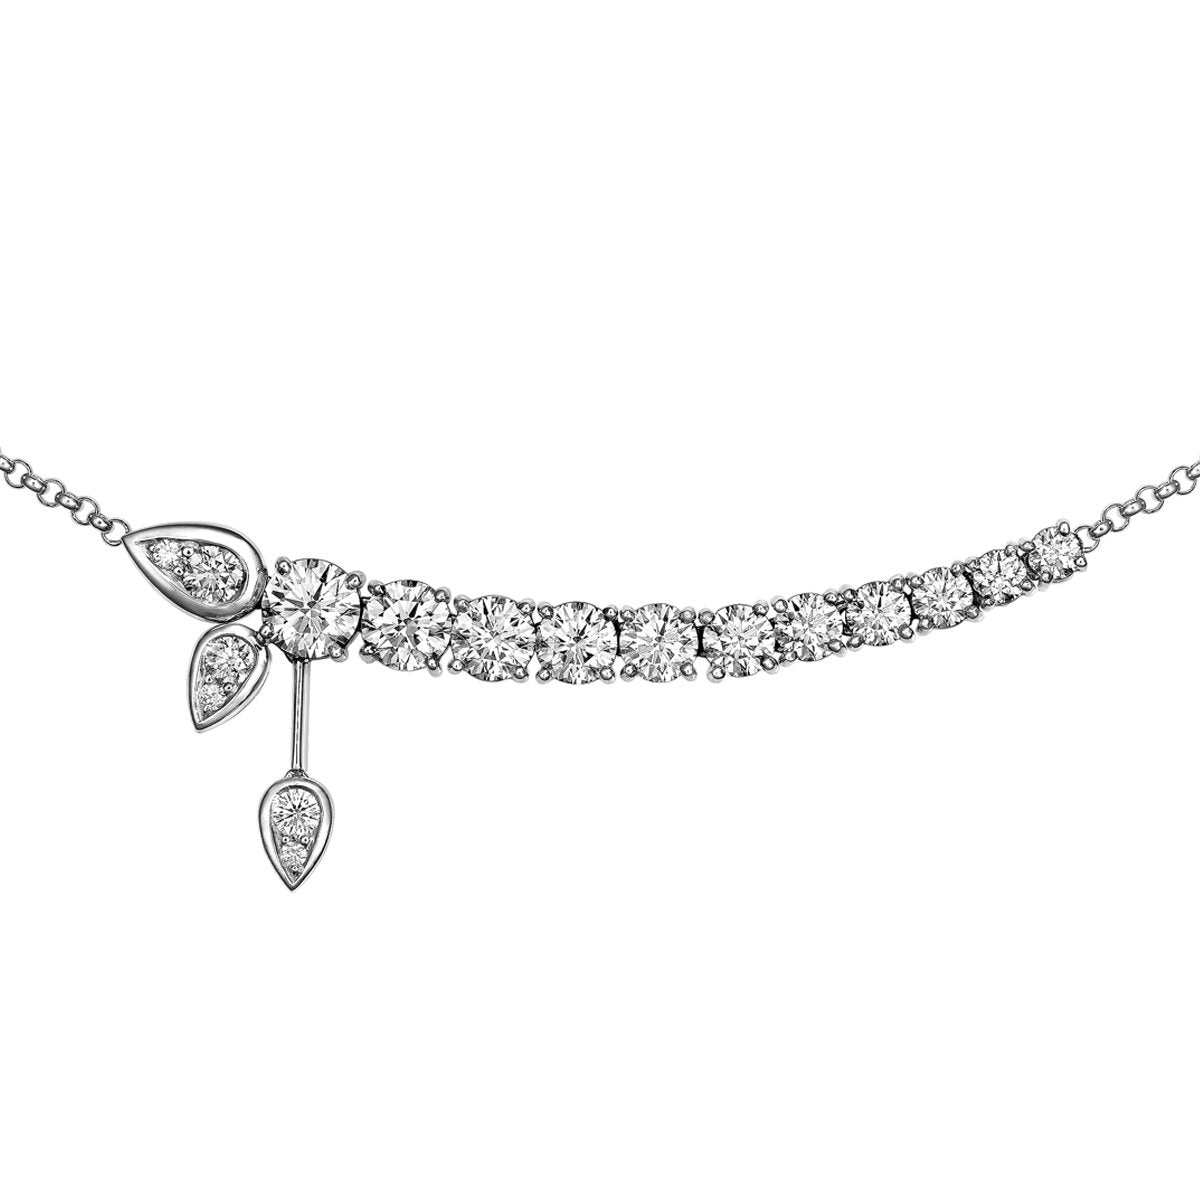 Daralis diamond necklace